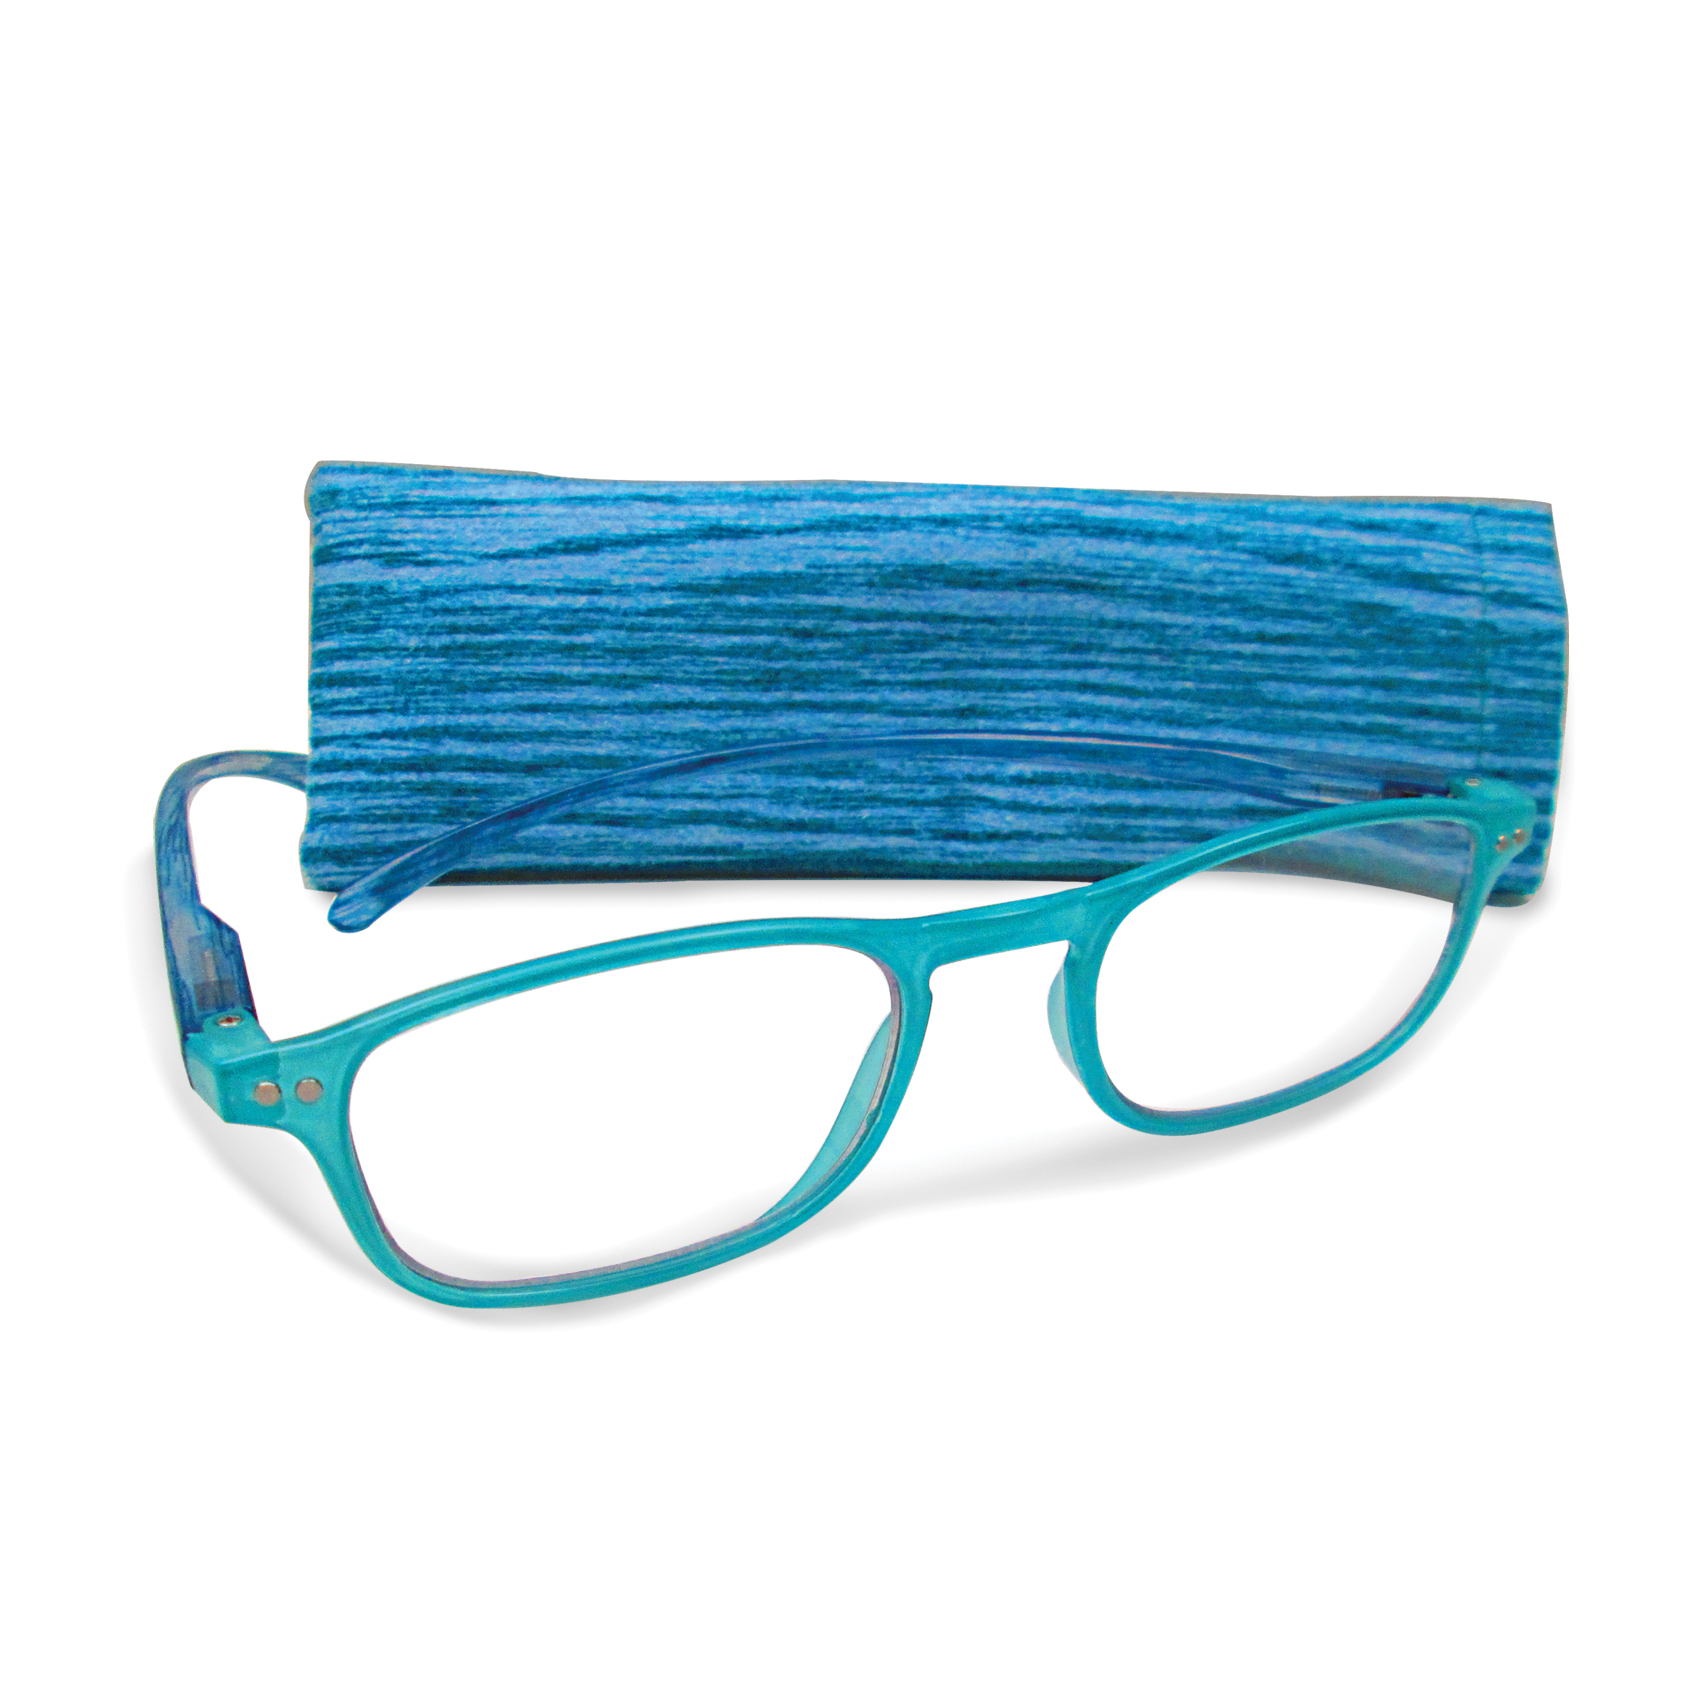 Blue +1.75 Magnification Reading Glasses